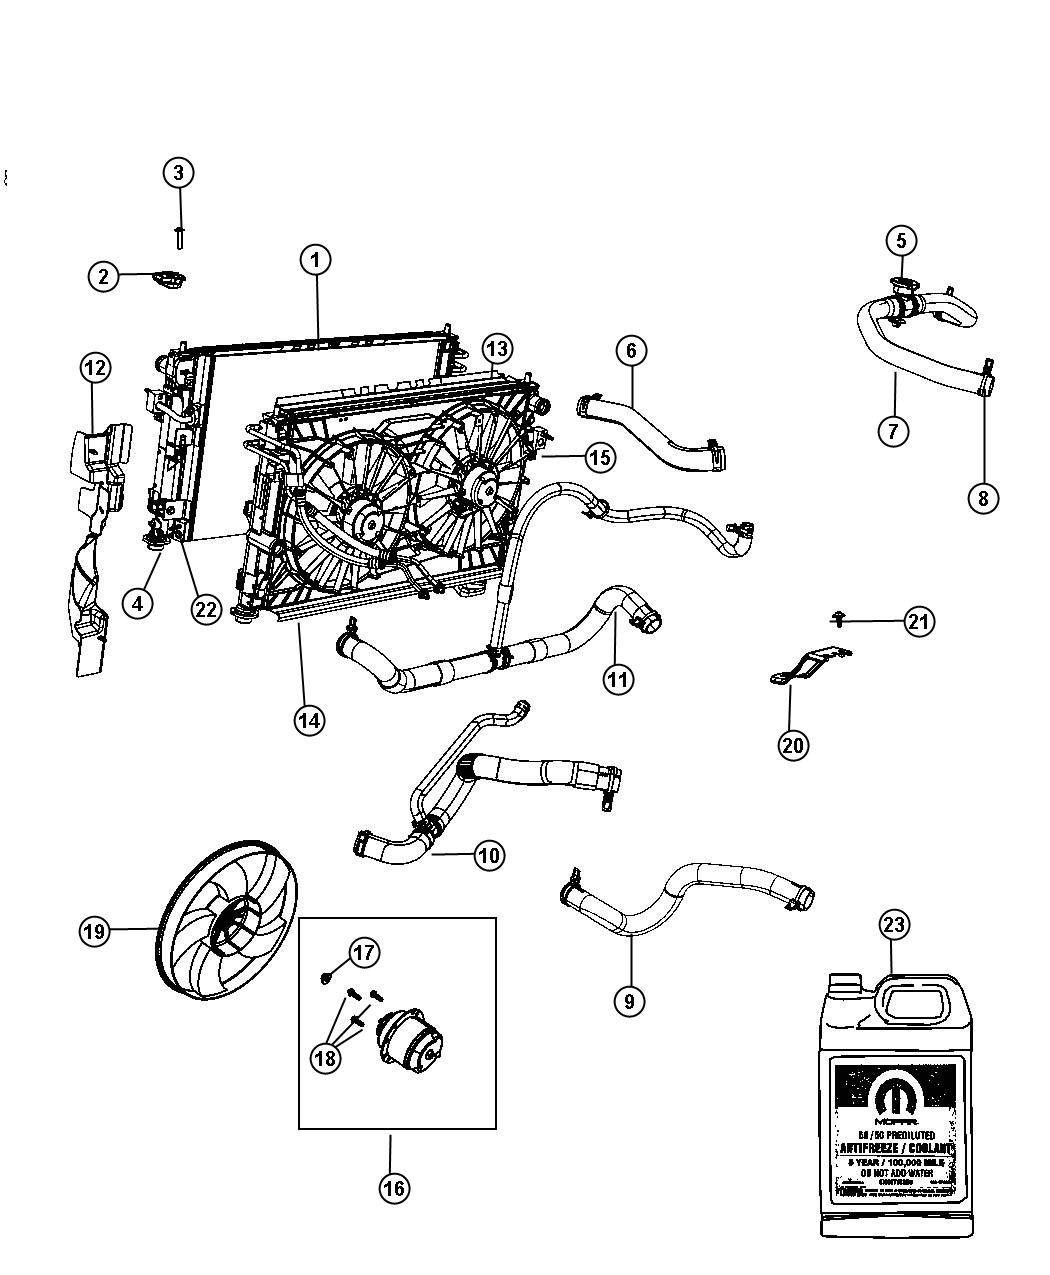 05278697AA  Dodge Cap Coolant recovery bottle  radiator After 021413   Mopar Parts Overstock